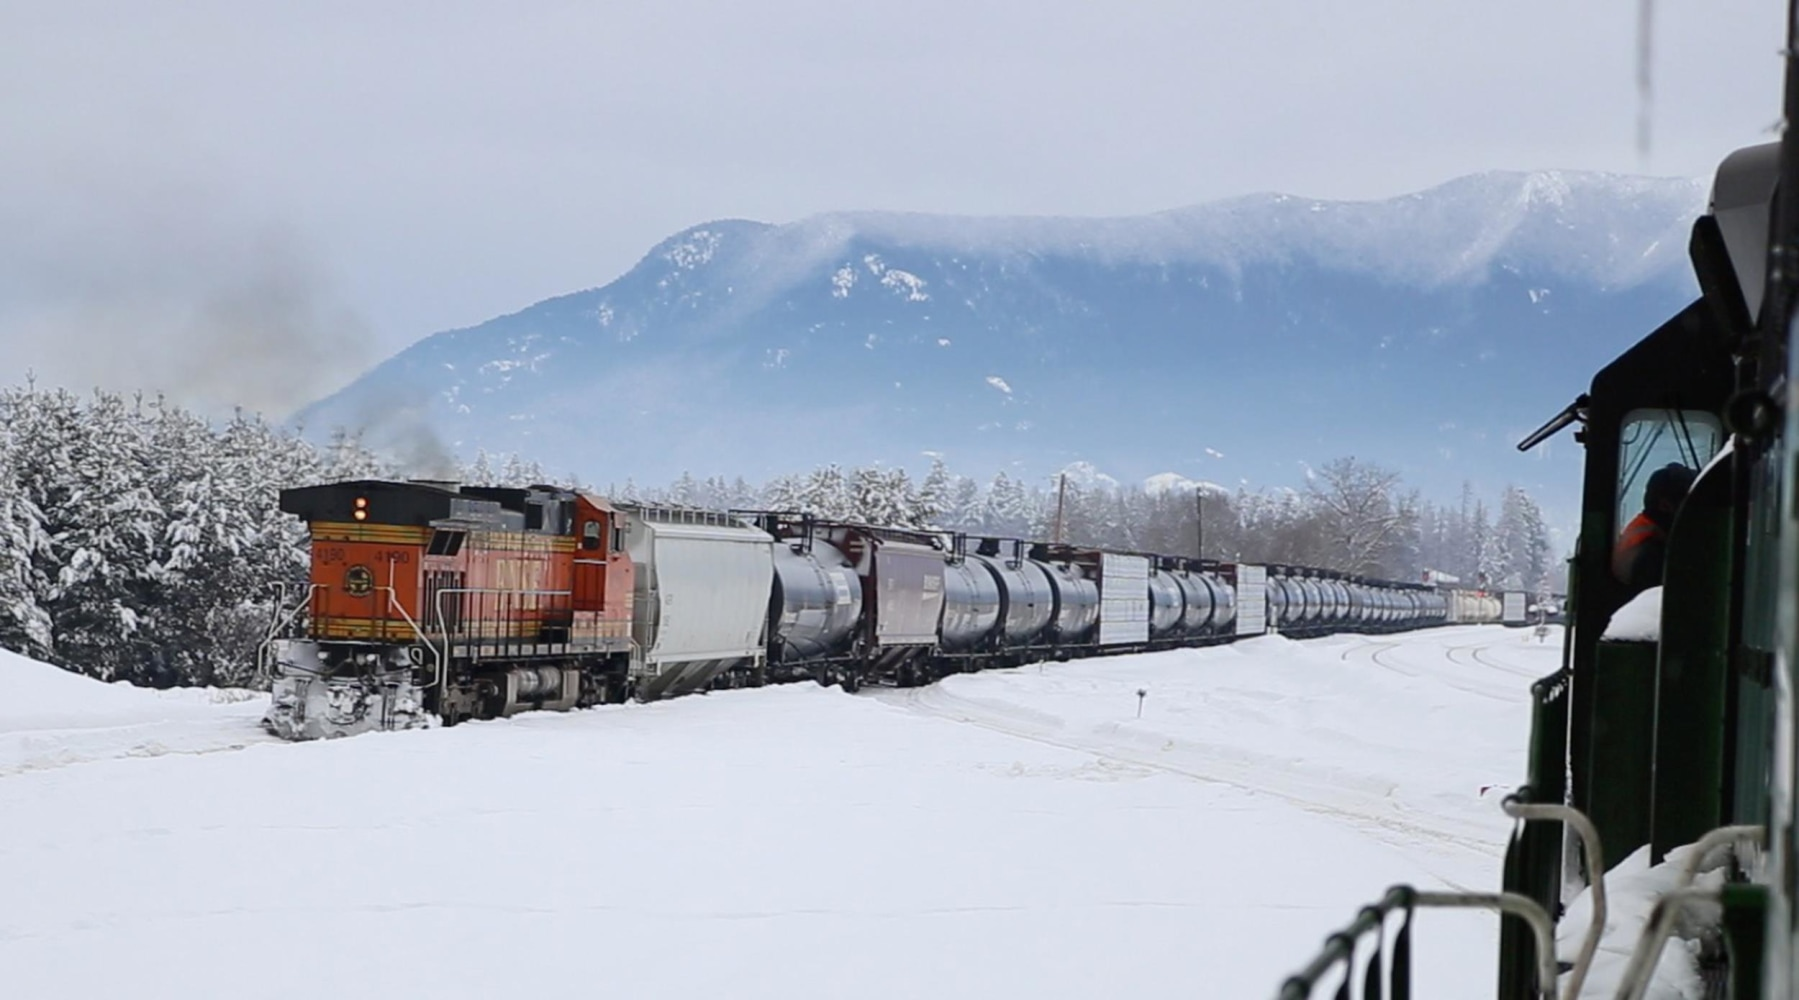 What is the difference between a through freight train and a local freight train?